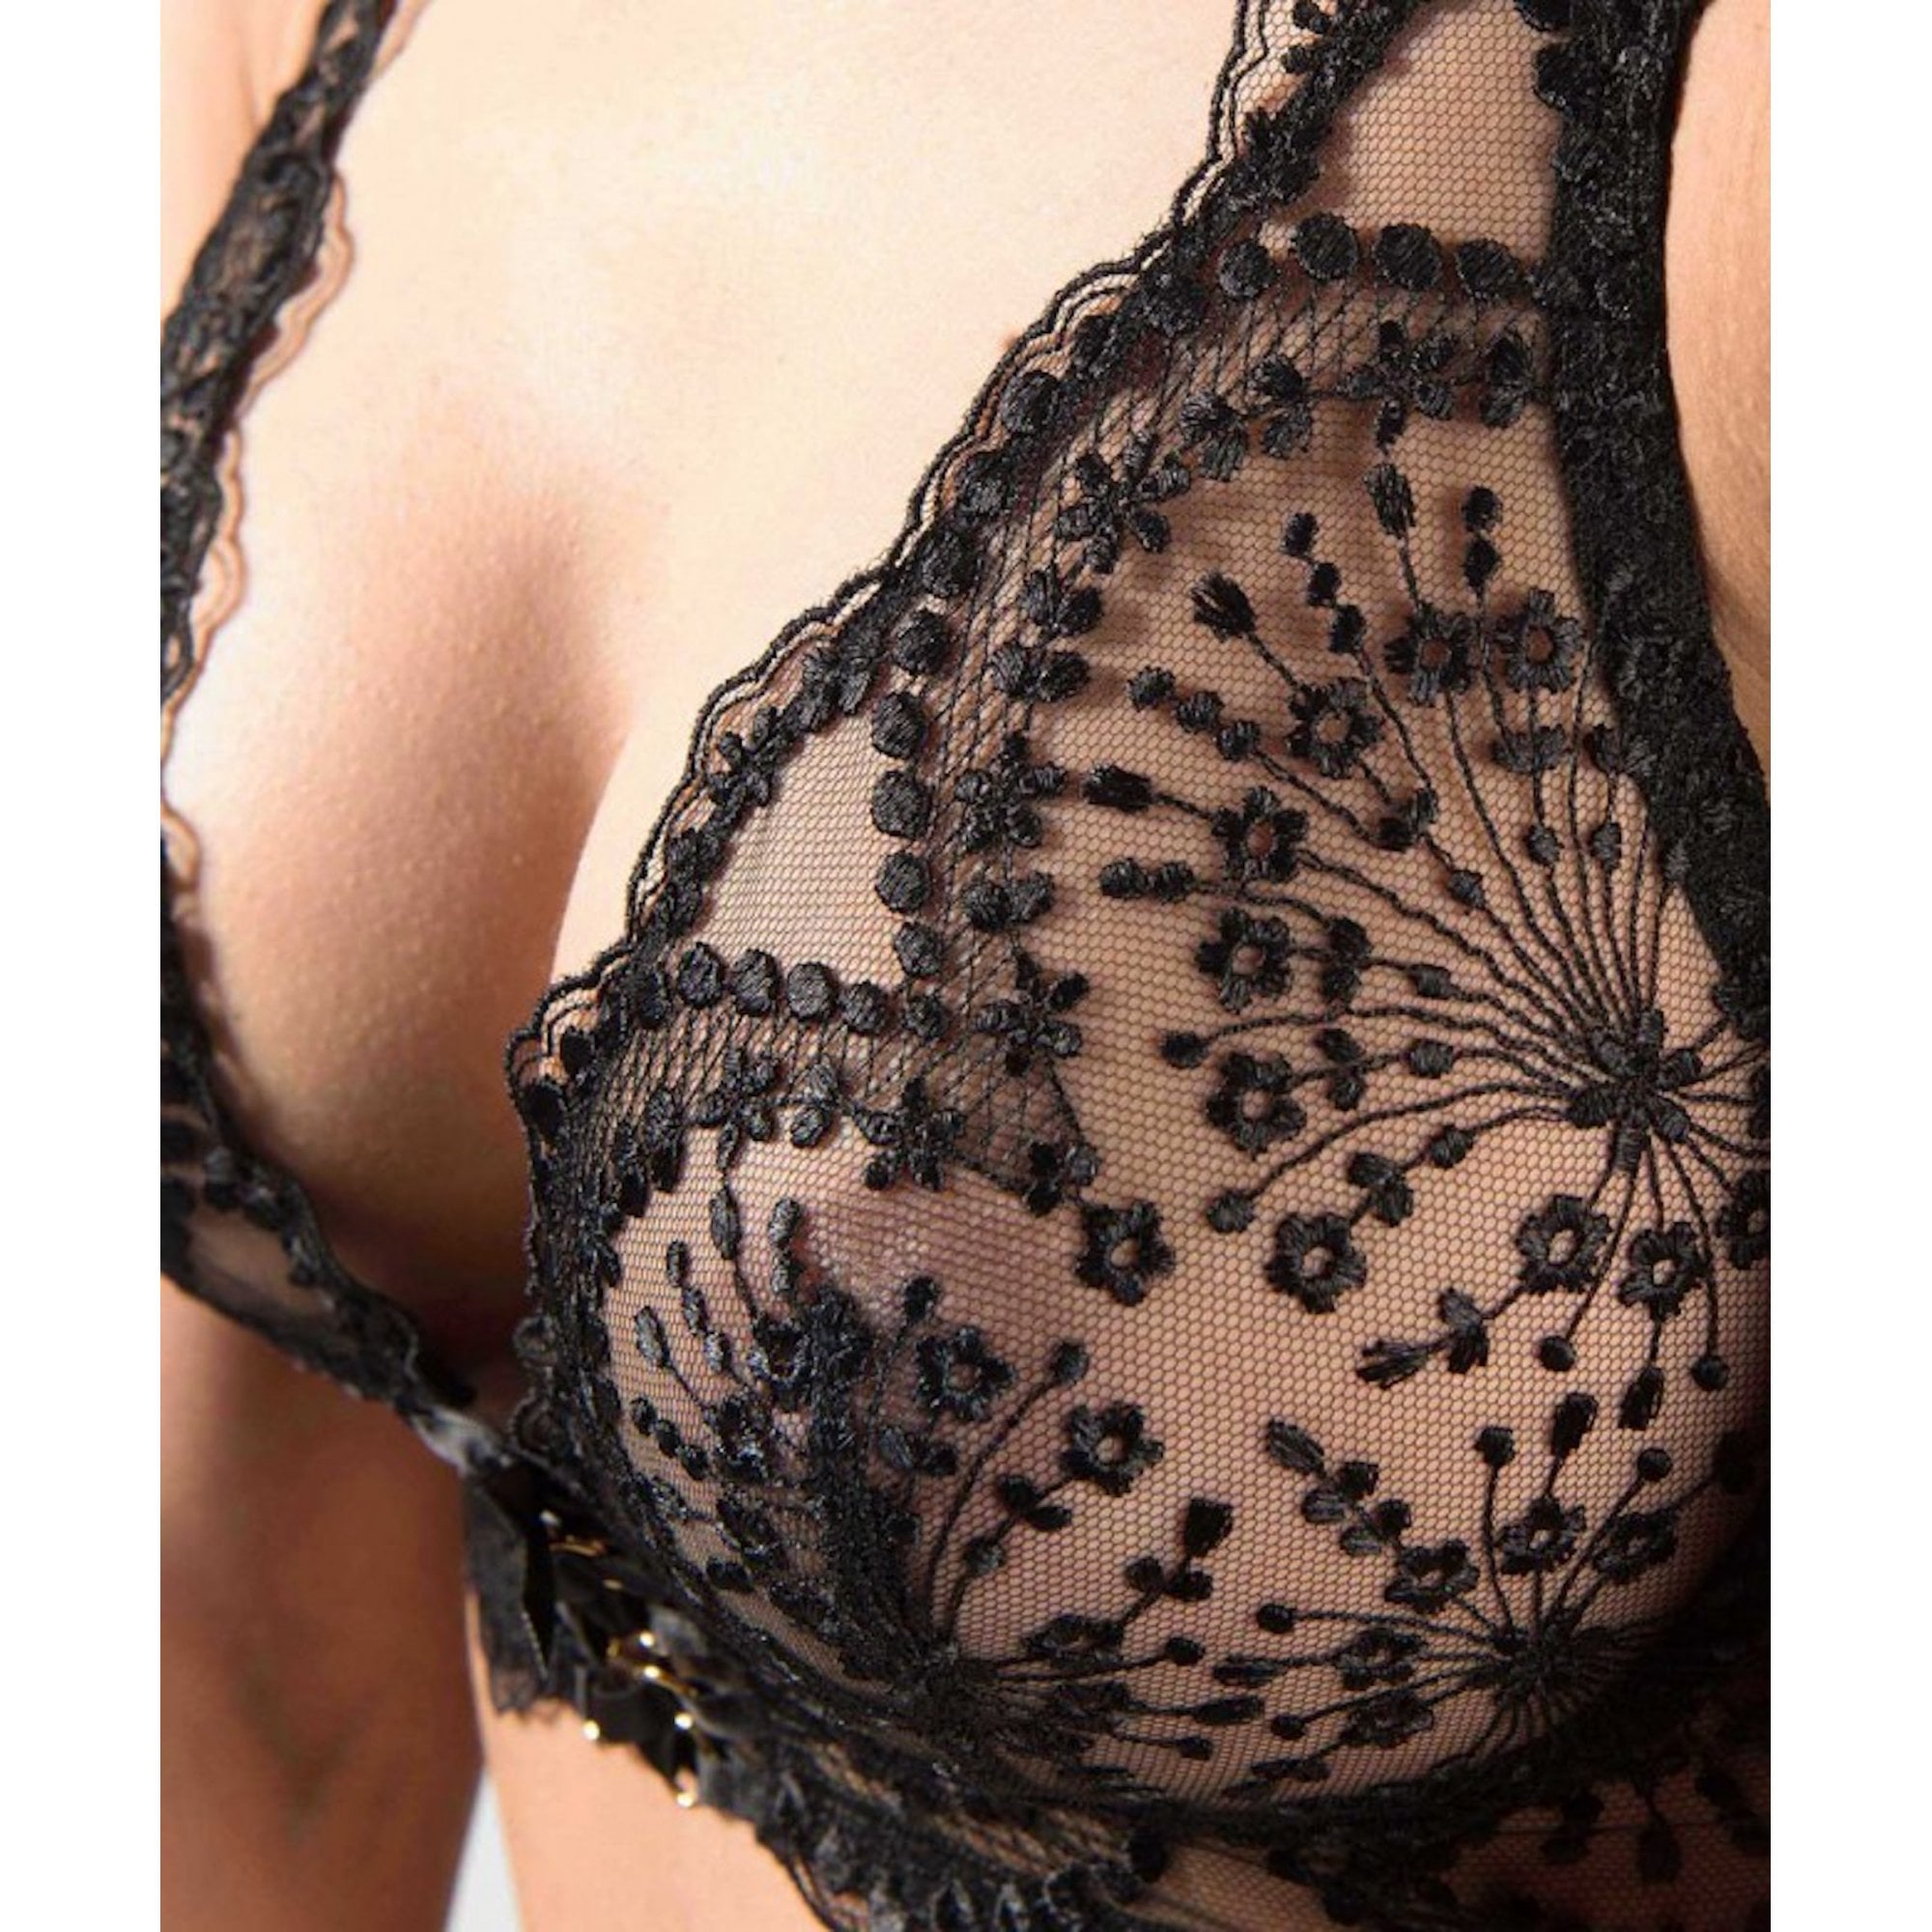 085a25fb2 Femme Sensuelle Wireless Triangle Bra - For Her... from The Luxe ...